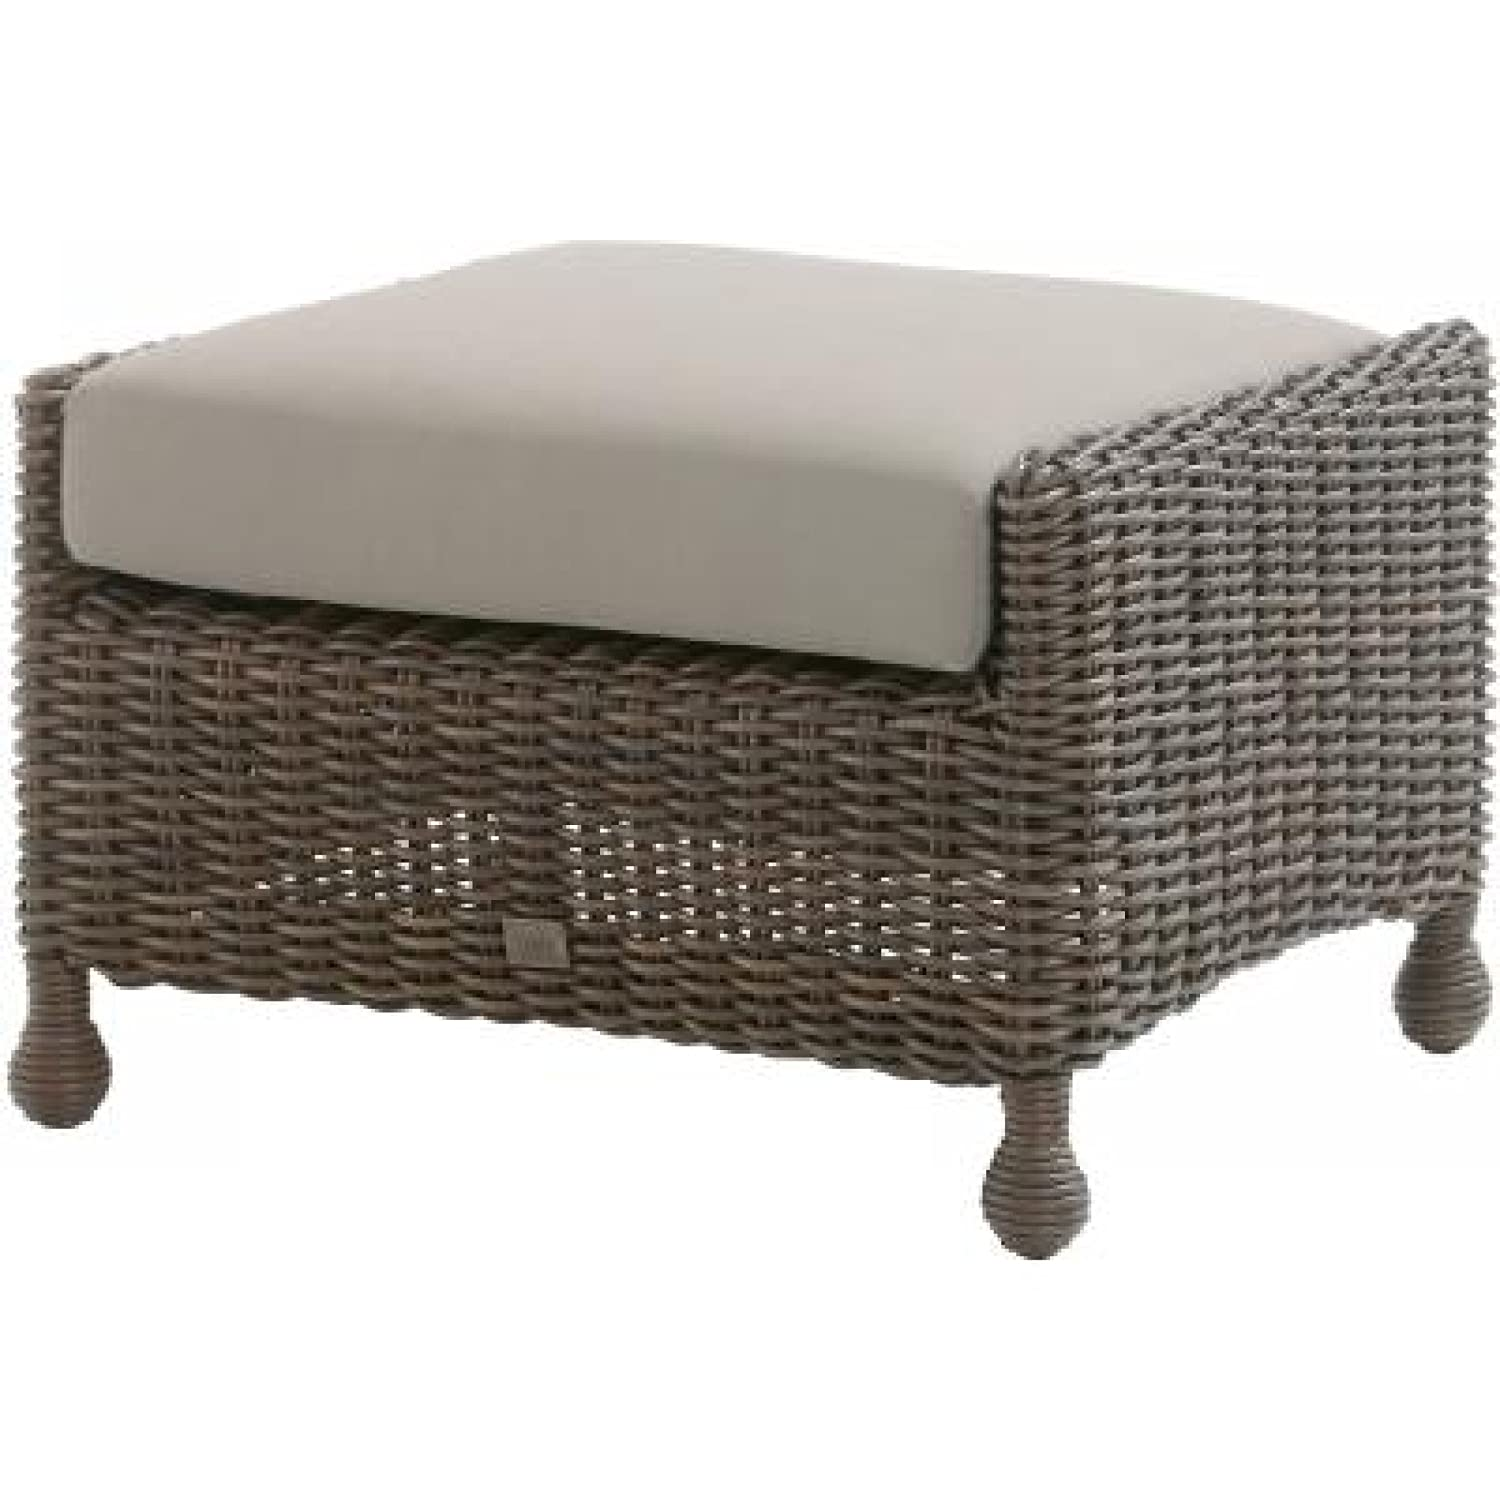 4Seasons Outdoor Madoera Fußhocker Polyrattan colonial